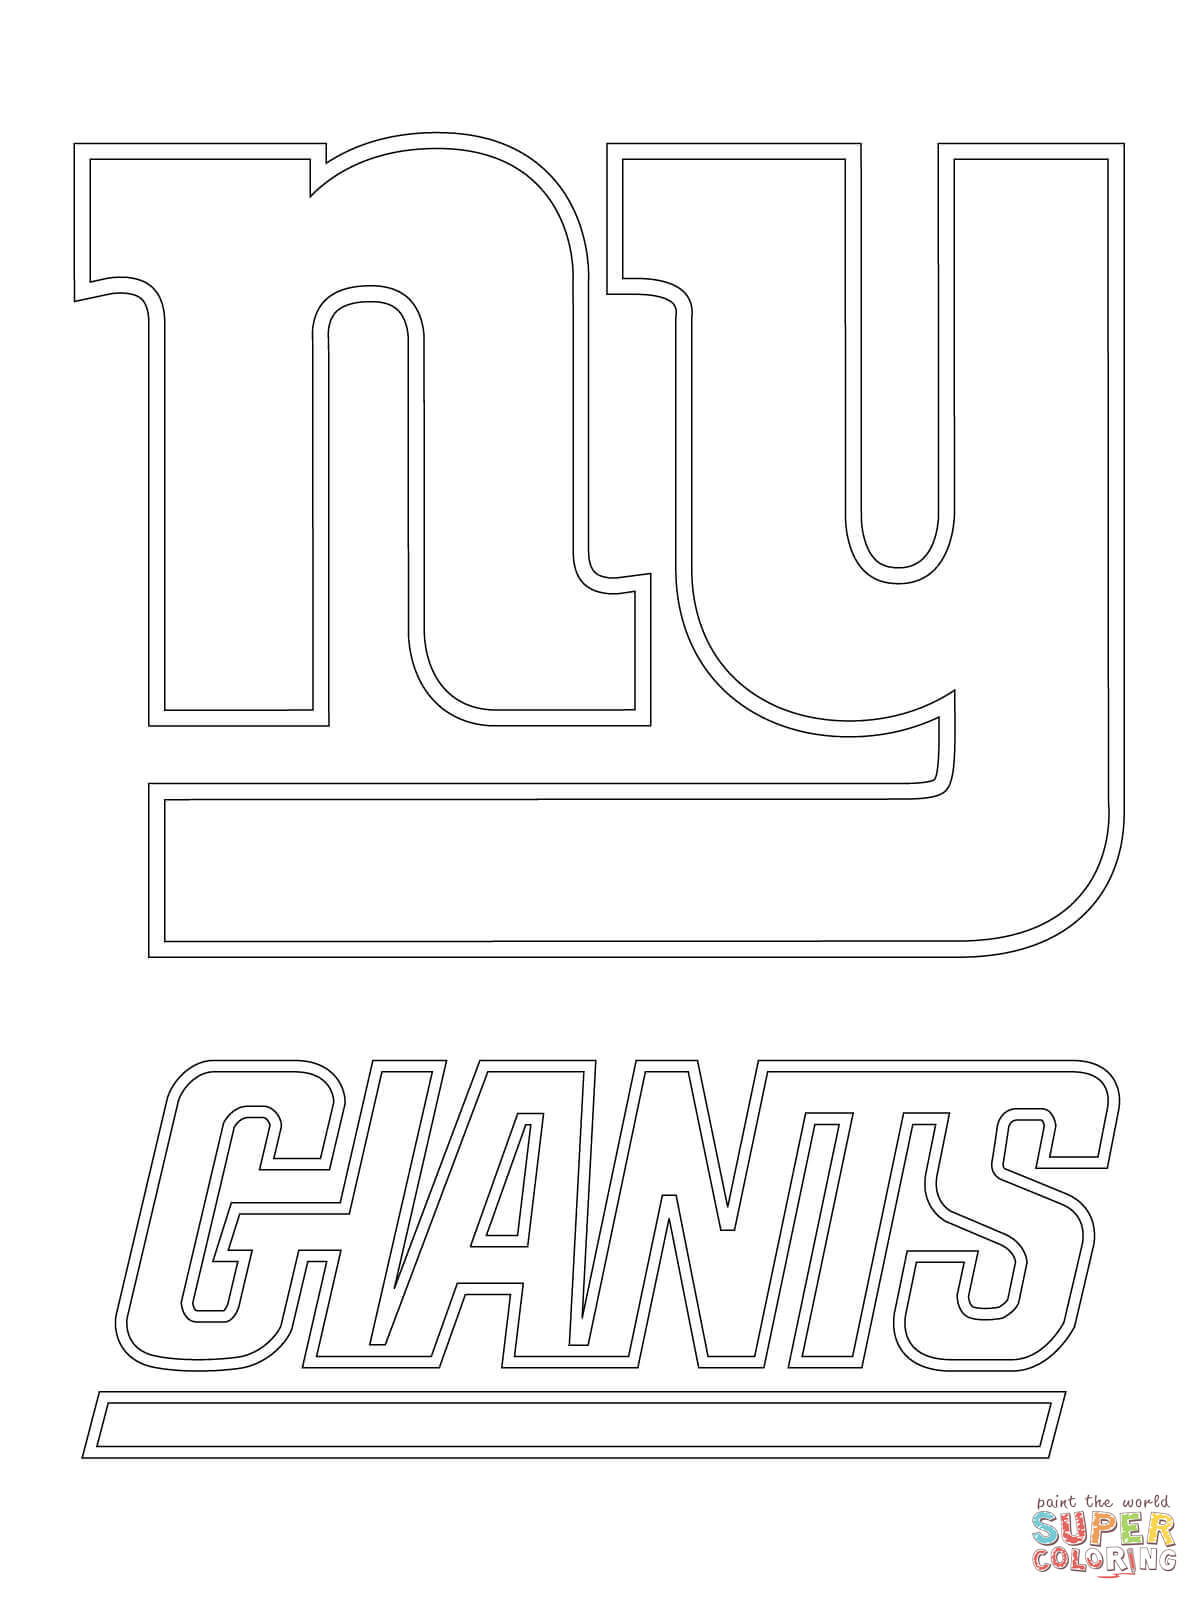 Clipart black and white giants logo png transparent stock New York Giants Logo coloring page | Free Printable Coloring Pages png transparent stock